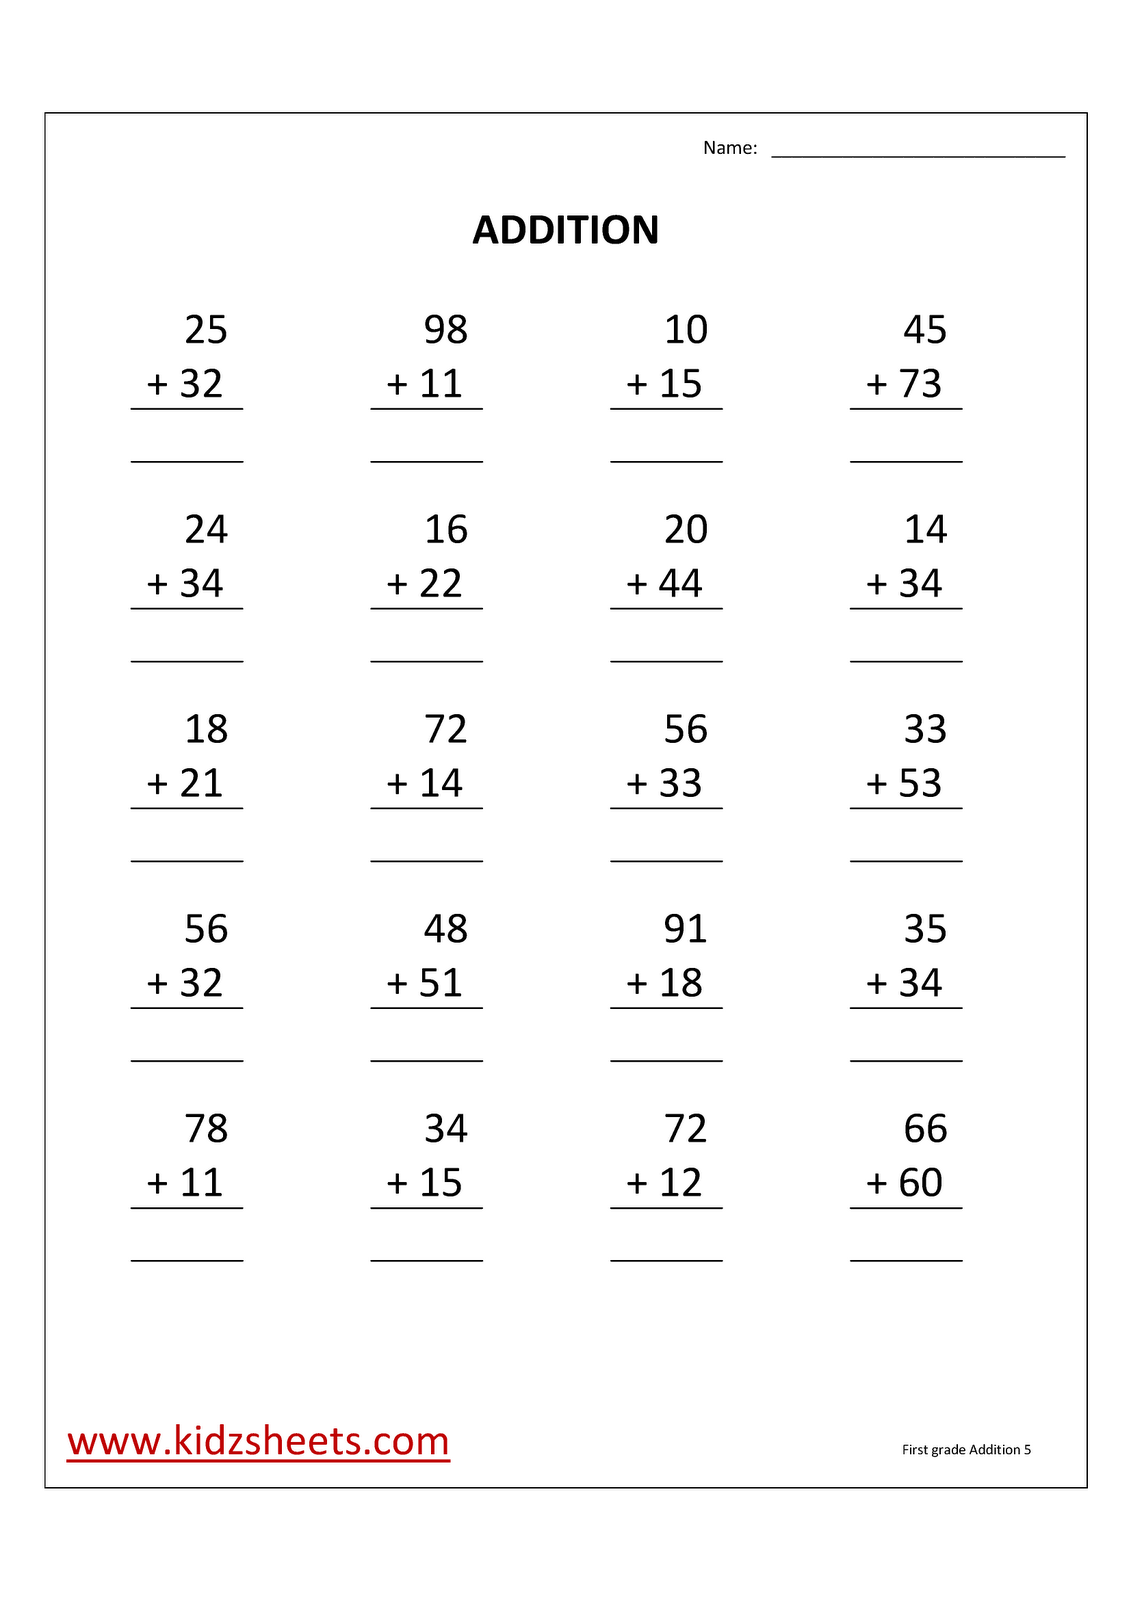 Worksheet 612792 Addition Worksheets Year 5 Addition – Addition Worksheets Year 4